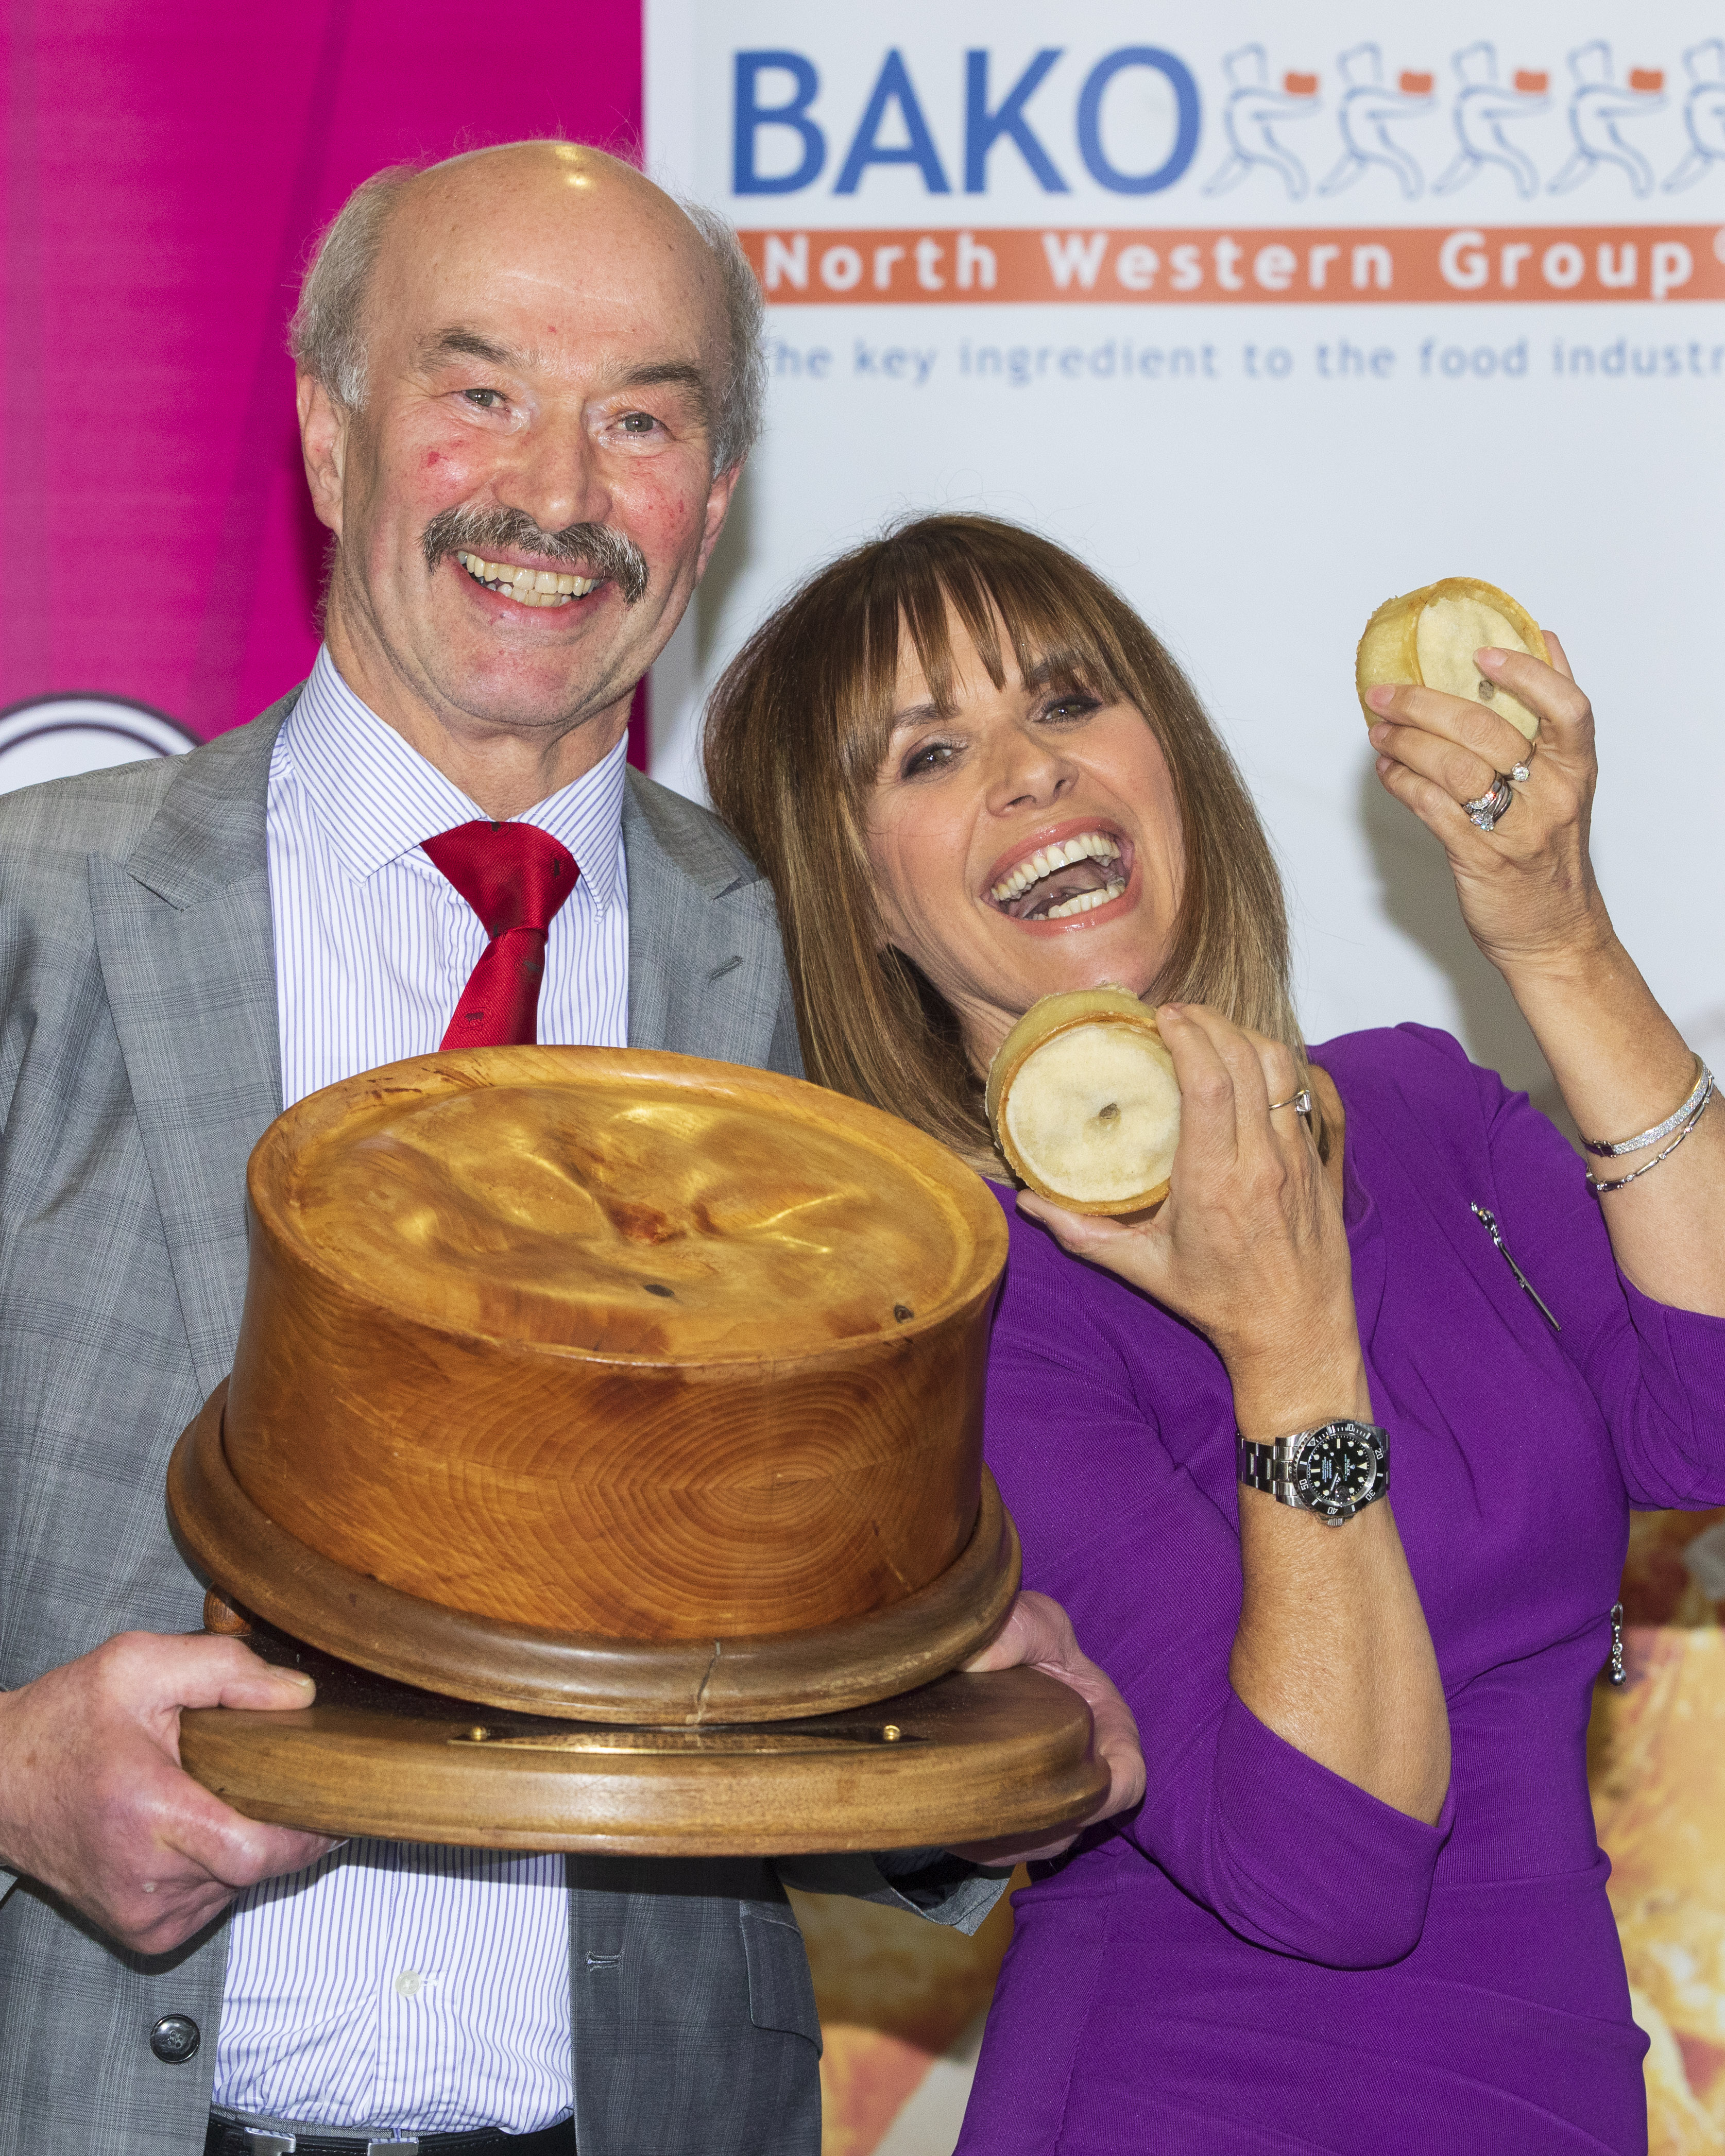 ***FREE TO USE*** Alan Pirie of James Pirie & Son, Blairgowrie Winner of the 21st World Championship Scotch Pie Awards 2020 hosted by Carol Smillie. Jan 14 2020